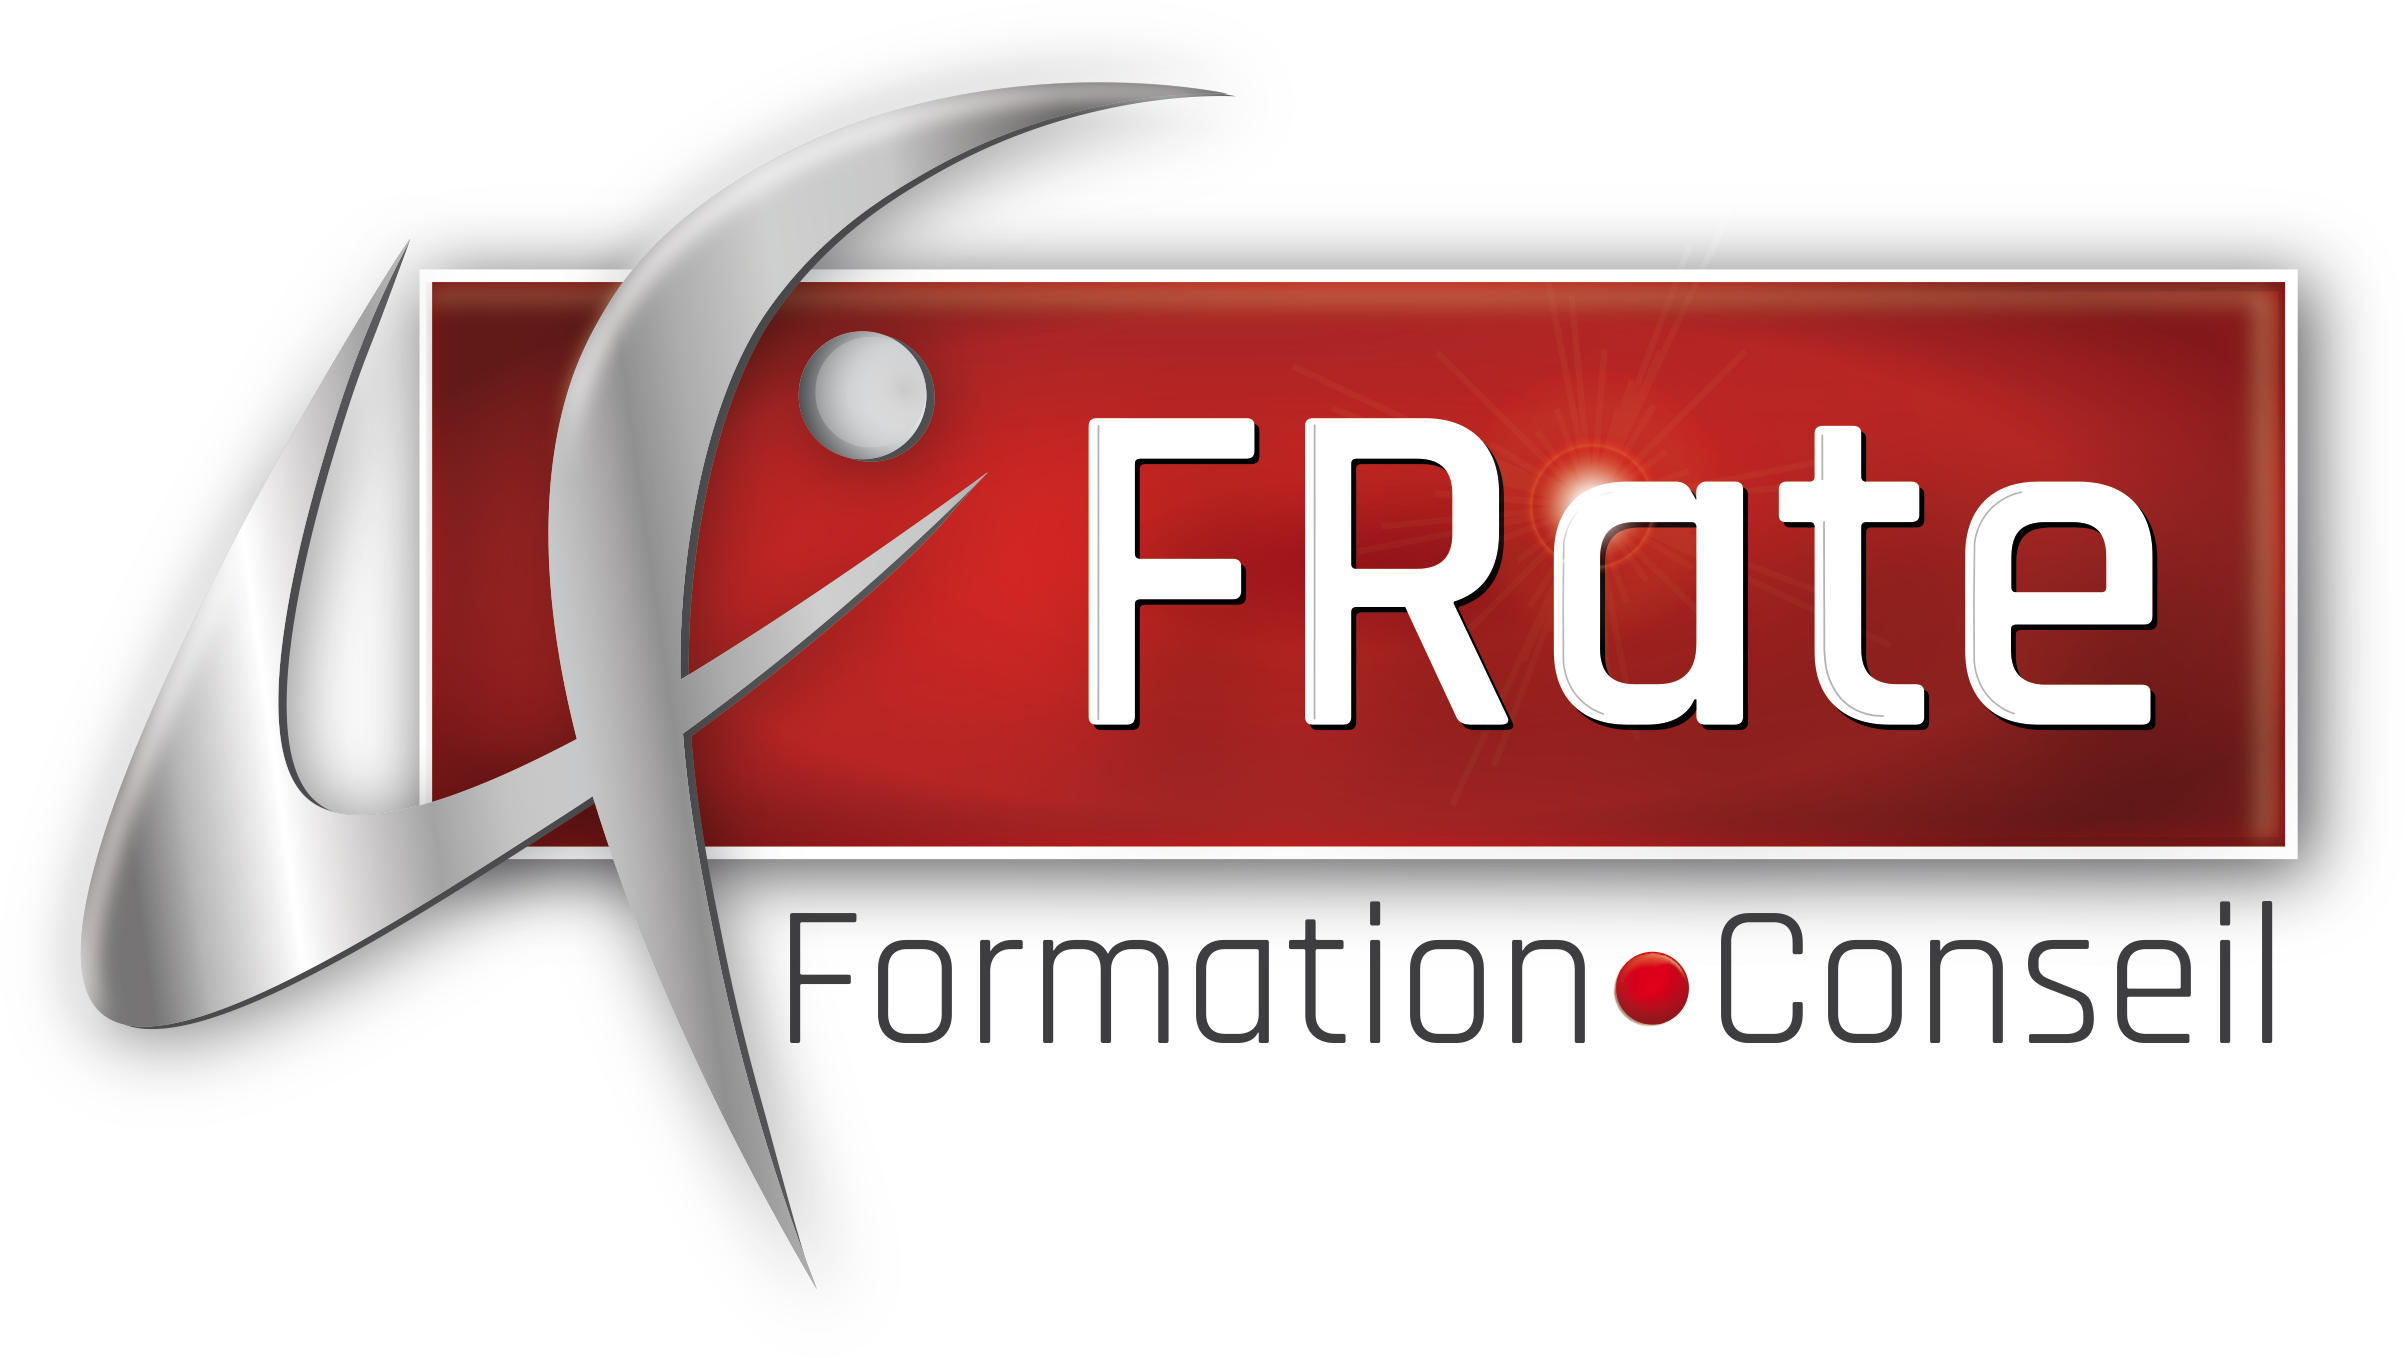 Frate Formation Conseil